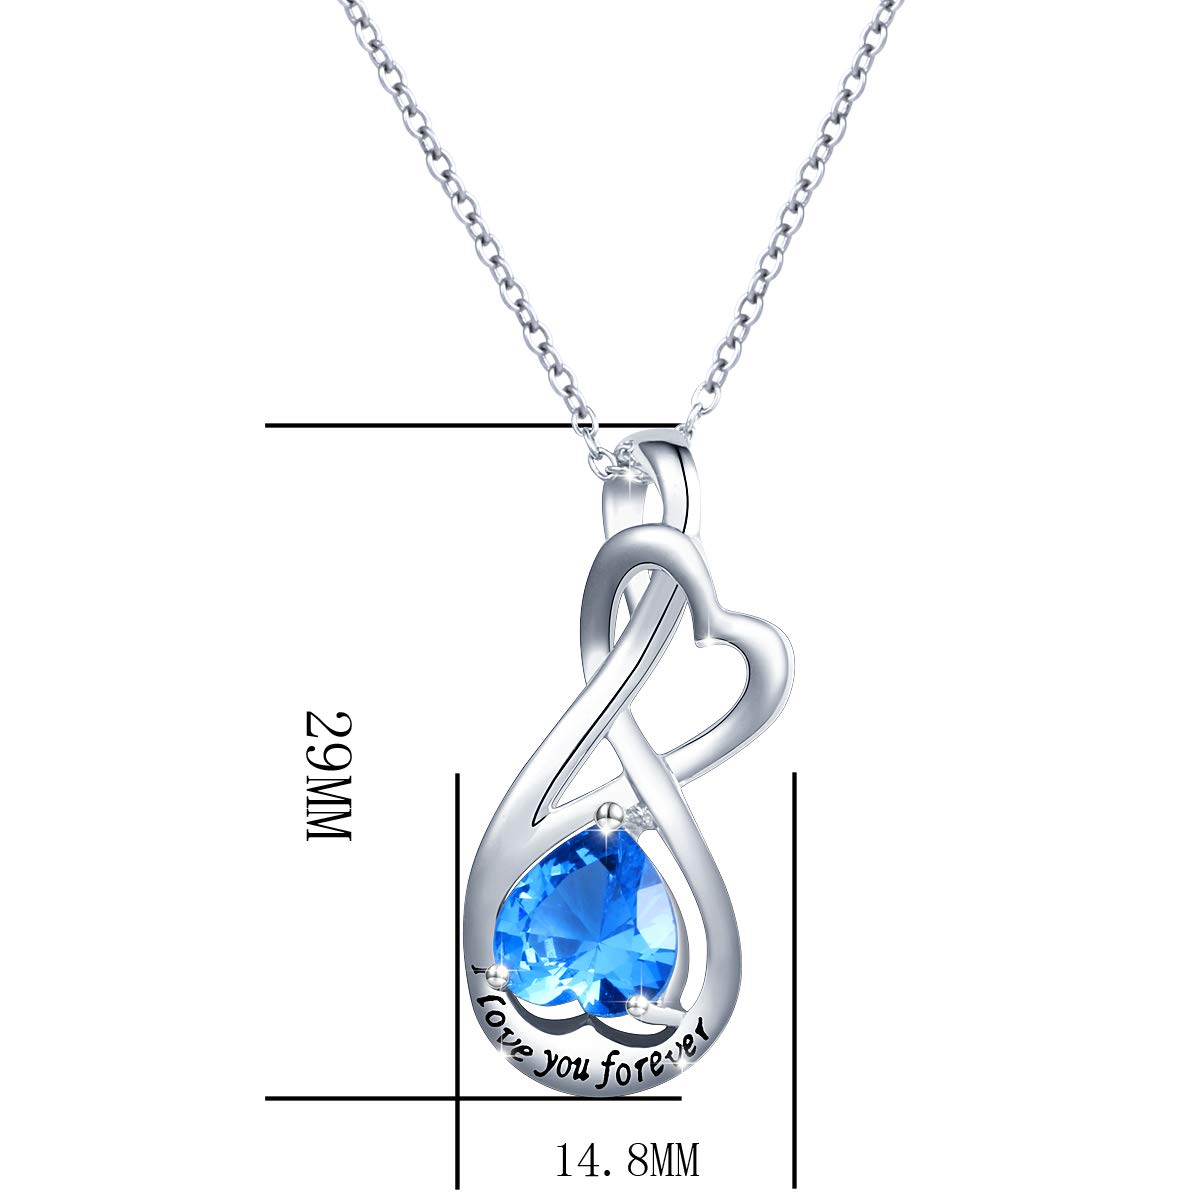 YinShan I Love You Forever Heart Necklace Jewelry Sterling Silver Pendant by YinShan (Image #6)